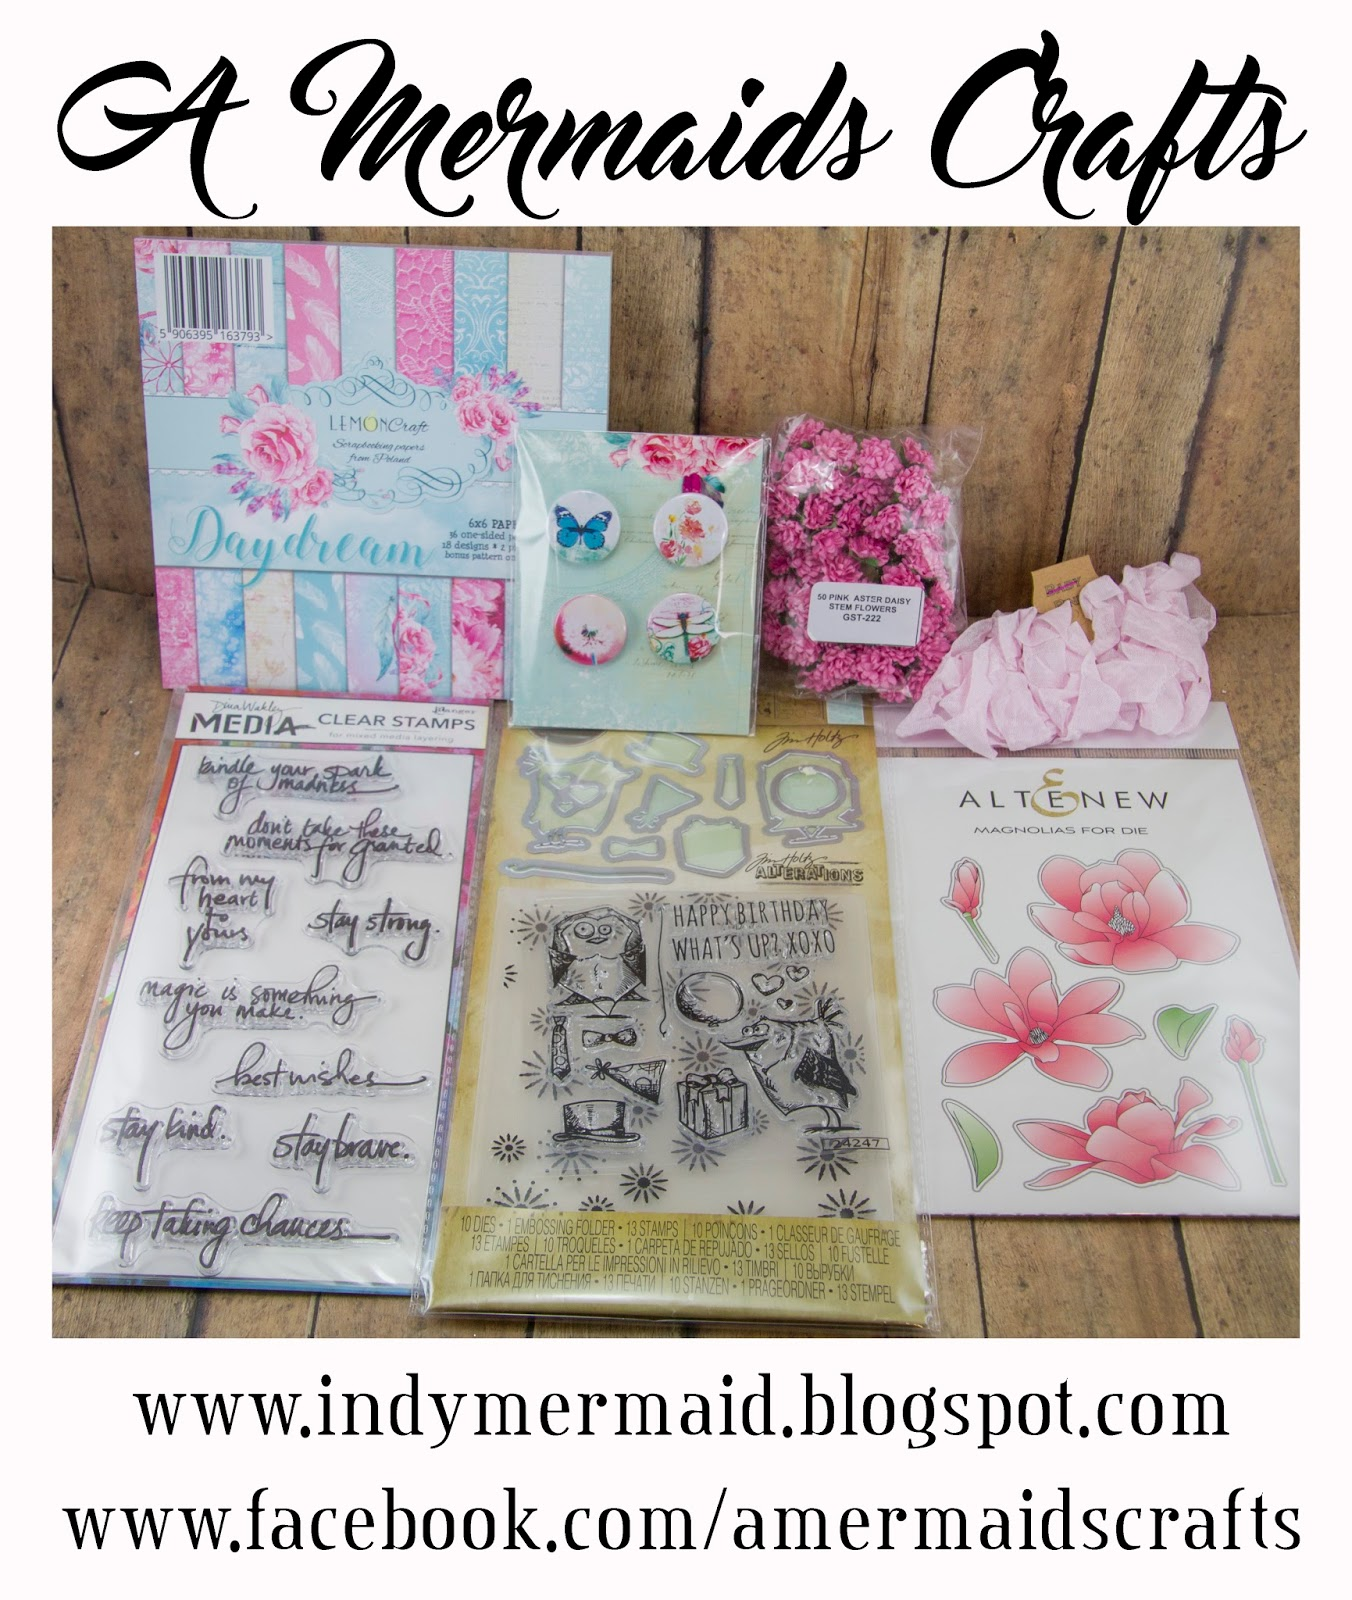 3/31 - A Mermaids Crafts